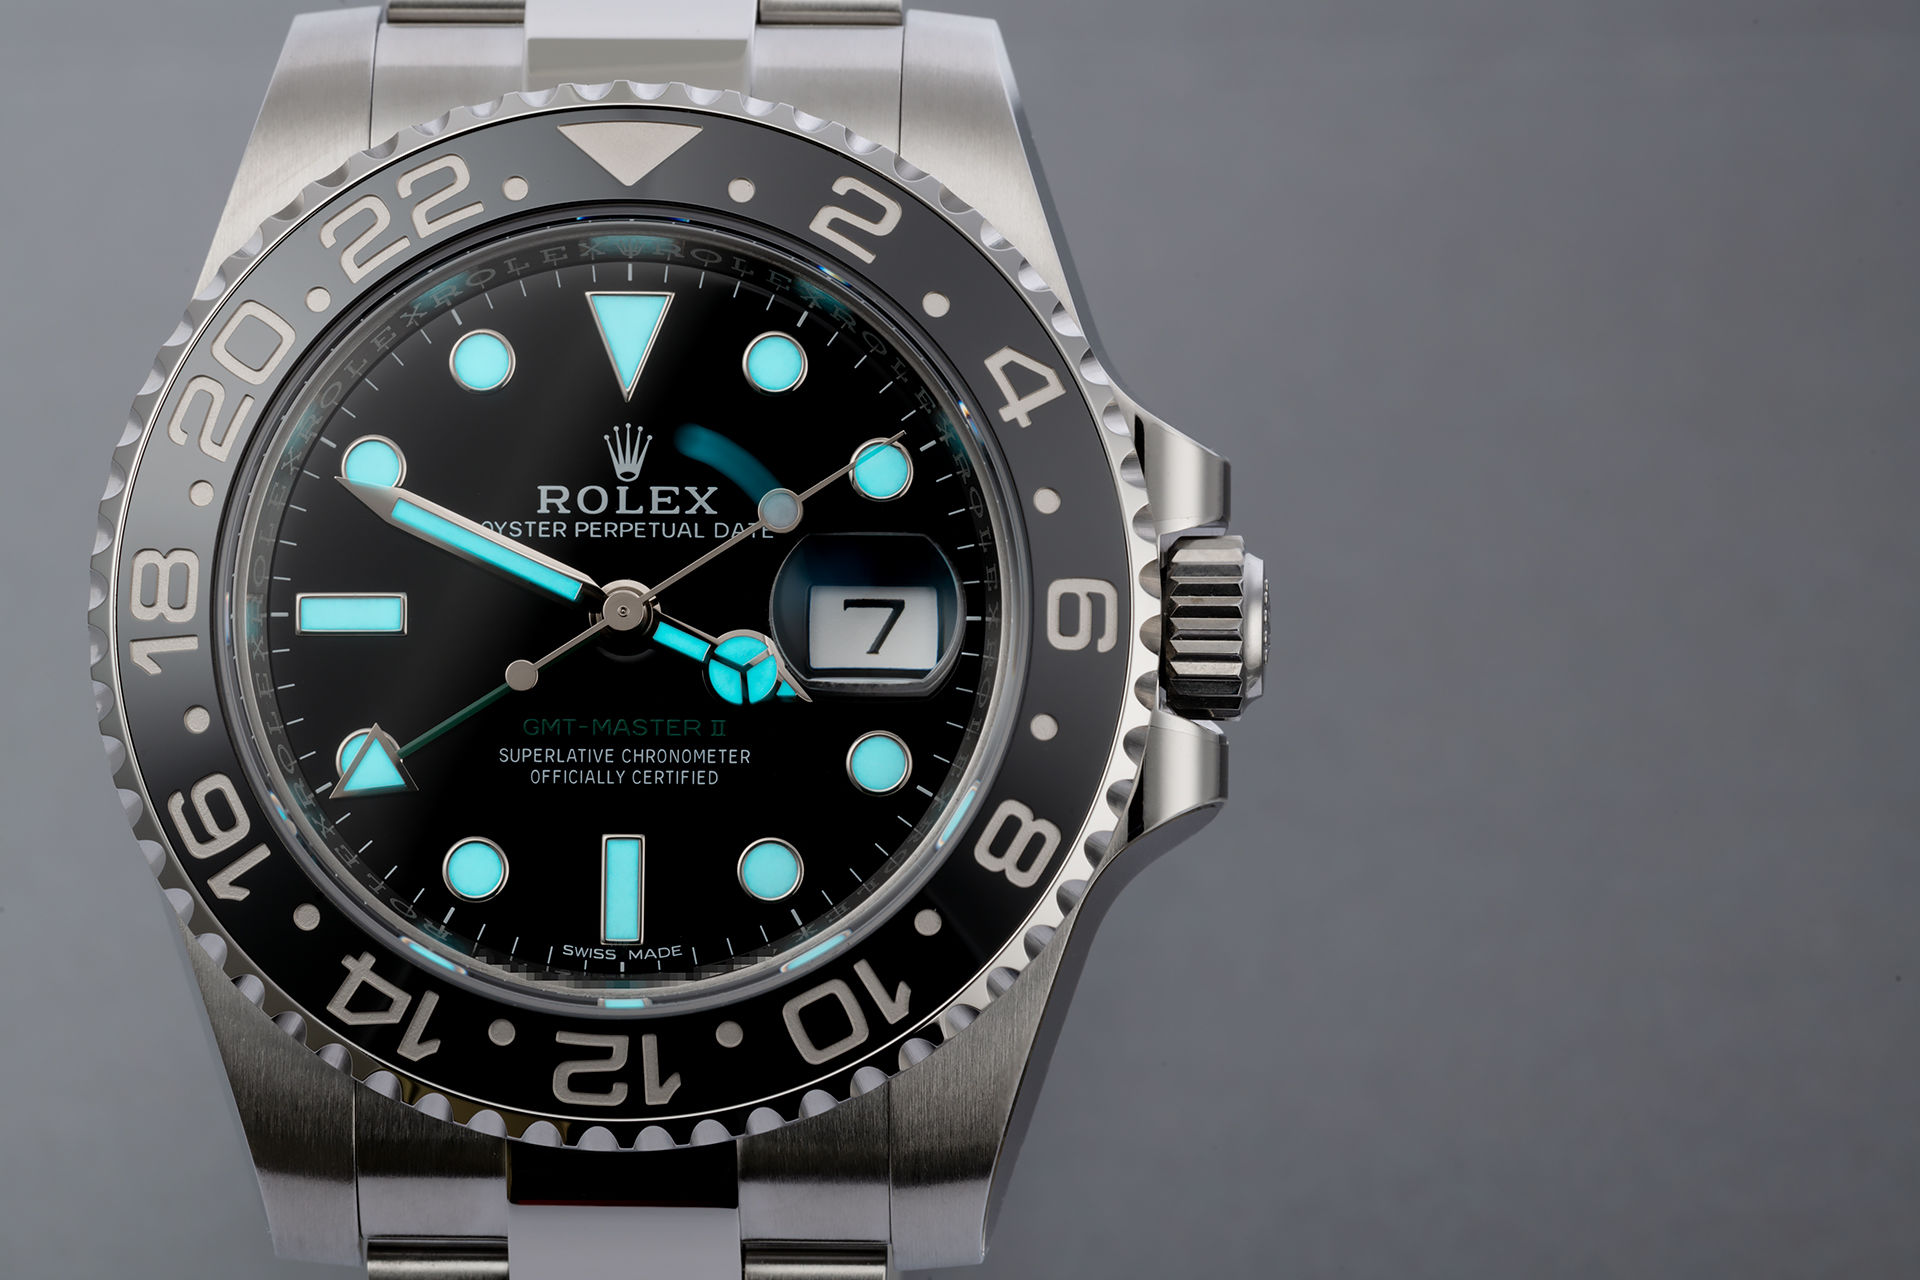 ref 116710LN | Full Set 'Discontinued' | Rolex GMT-Master II